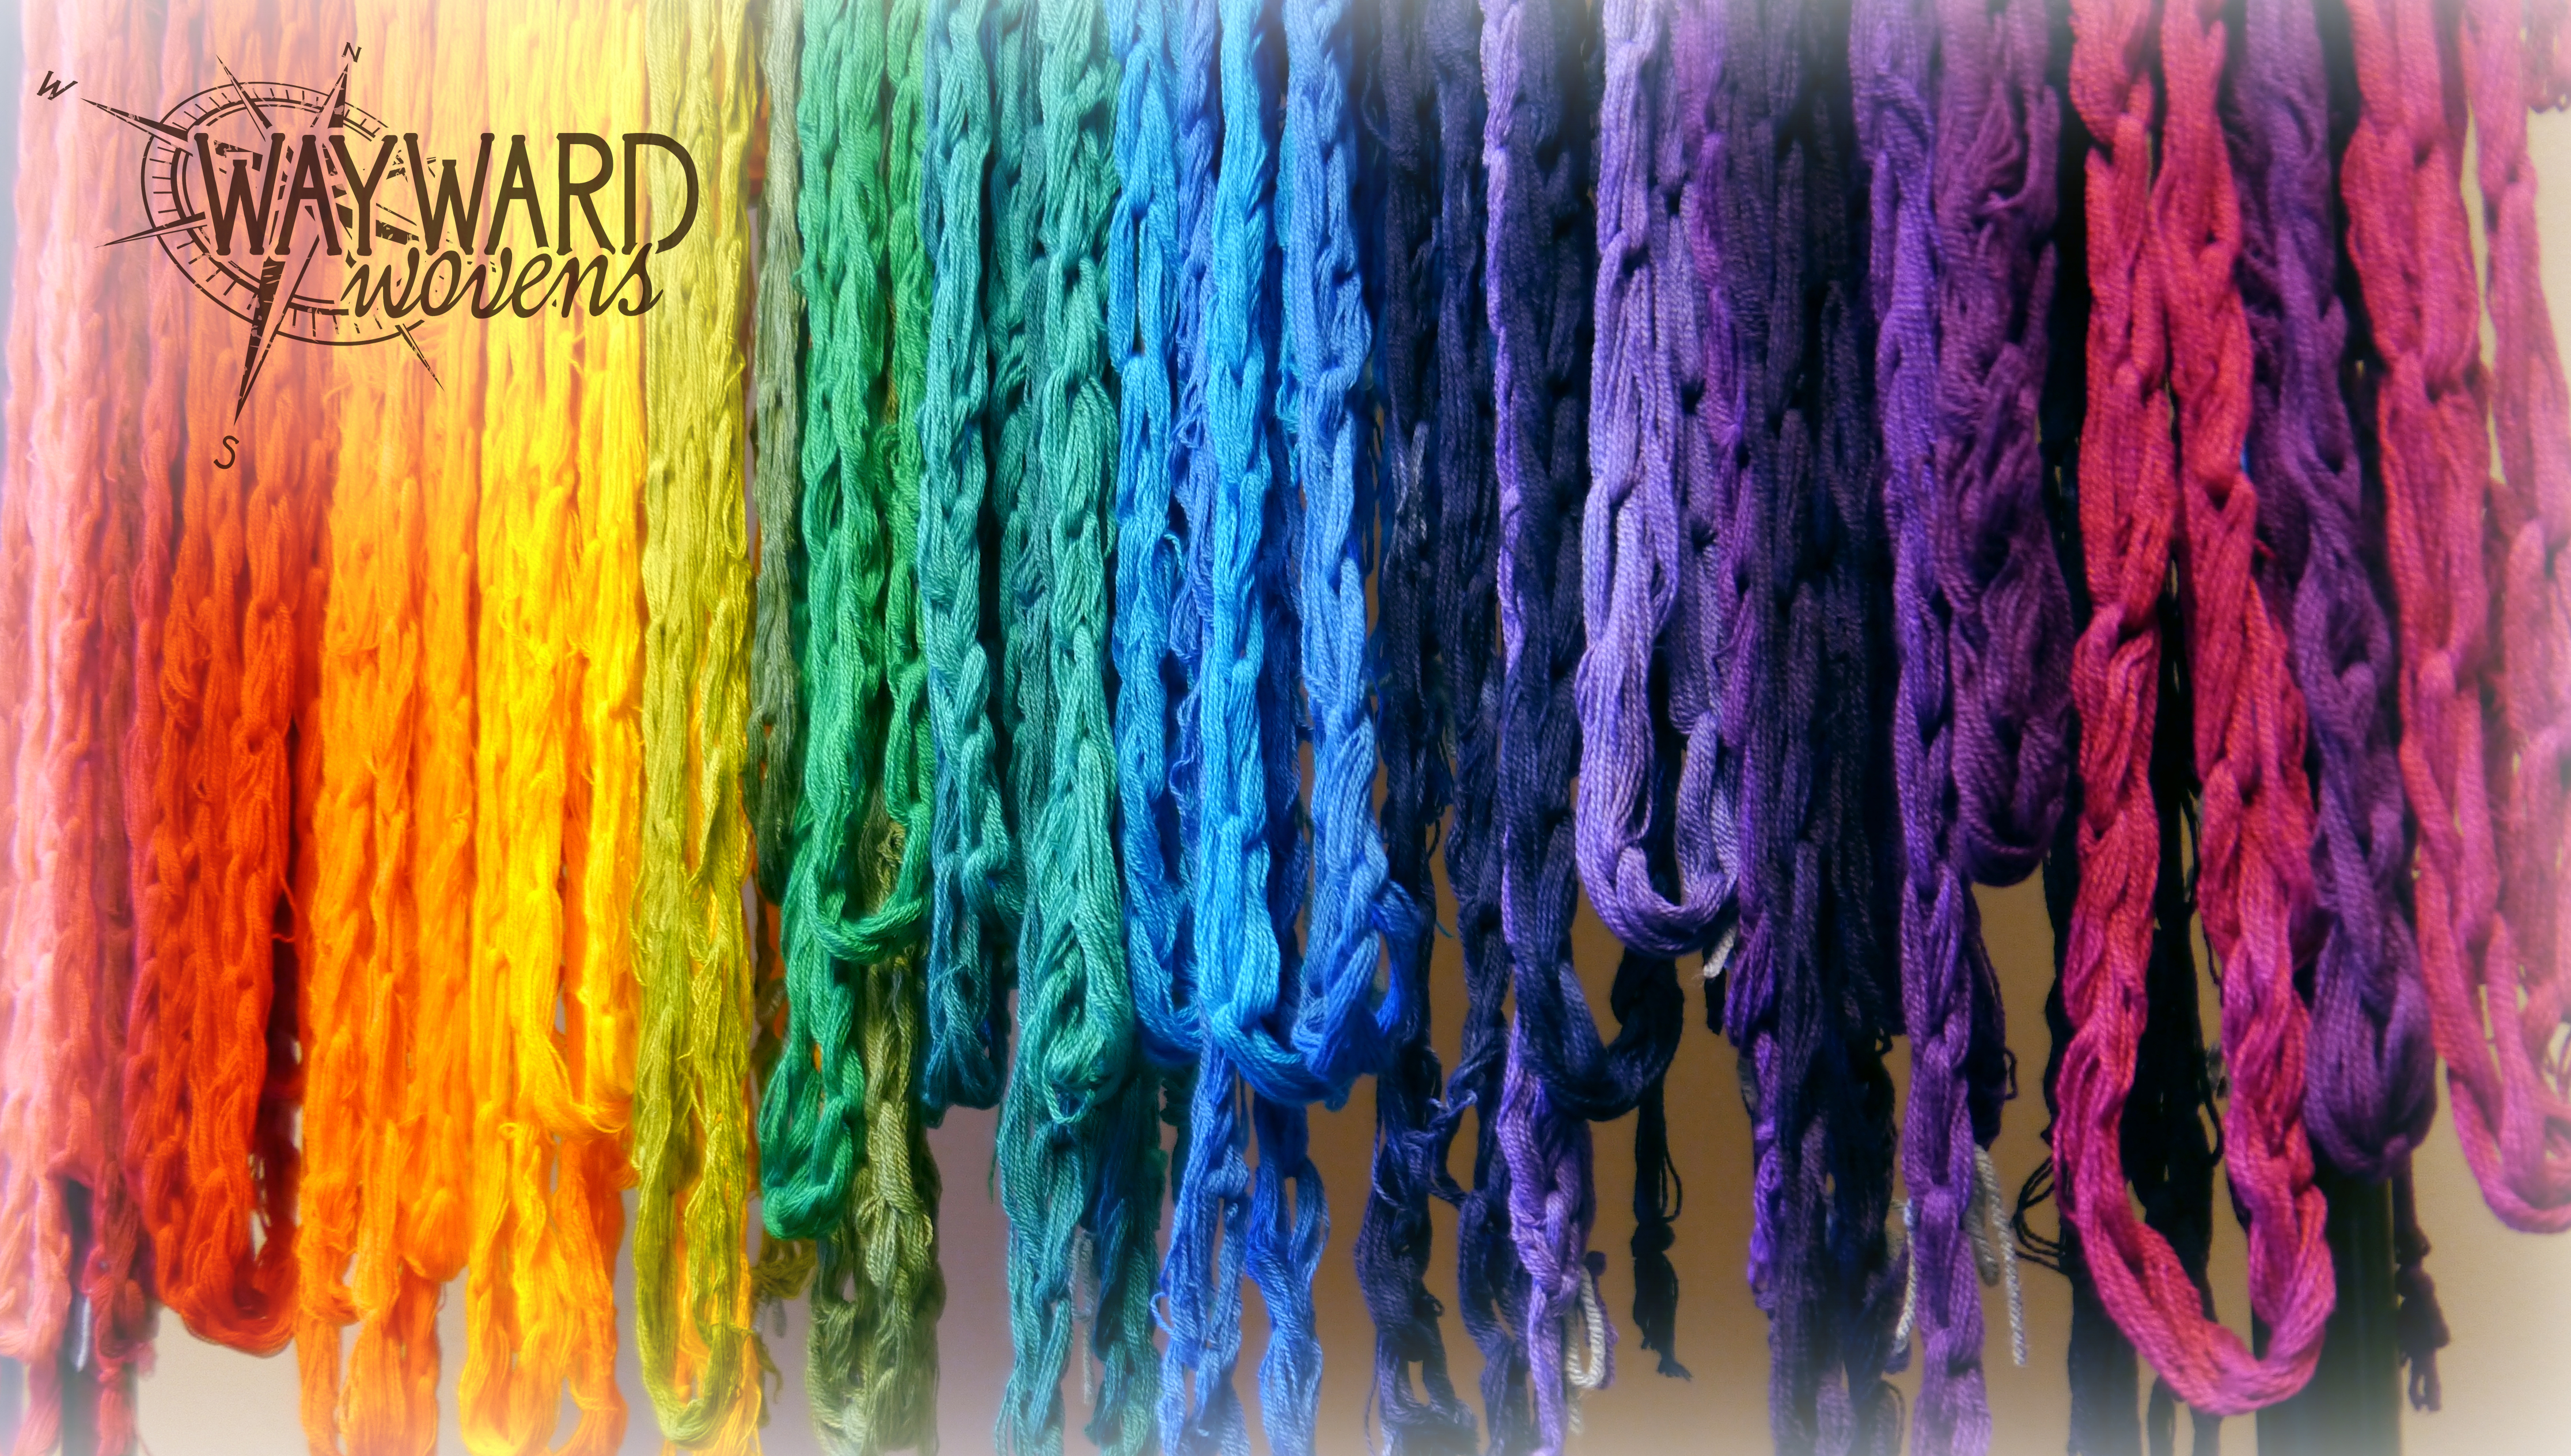 Hanging dyed warp chains